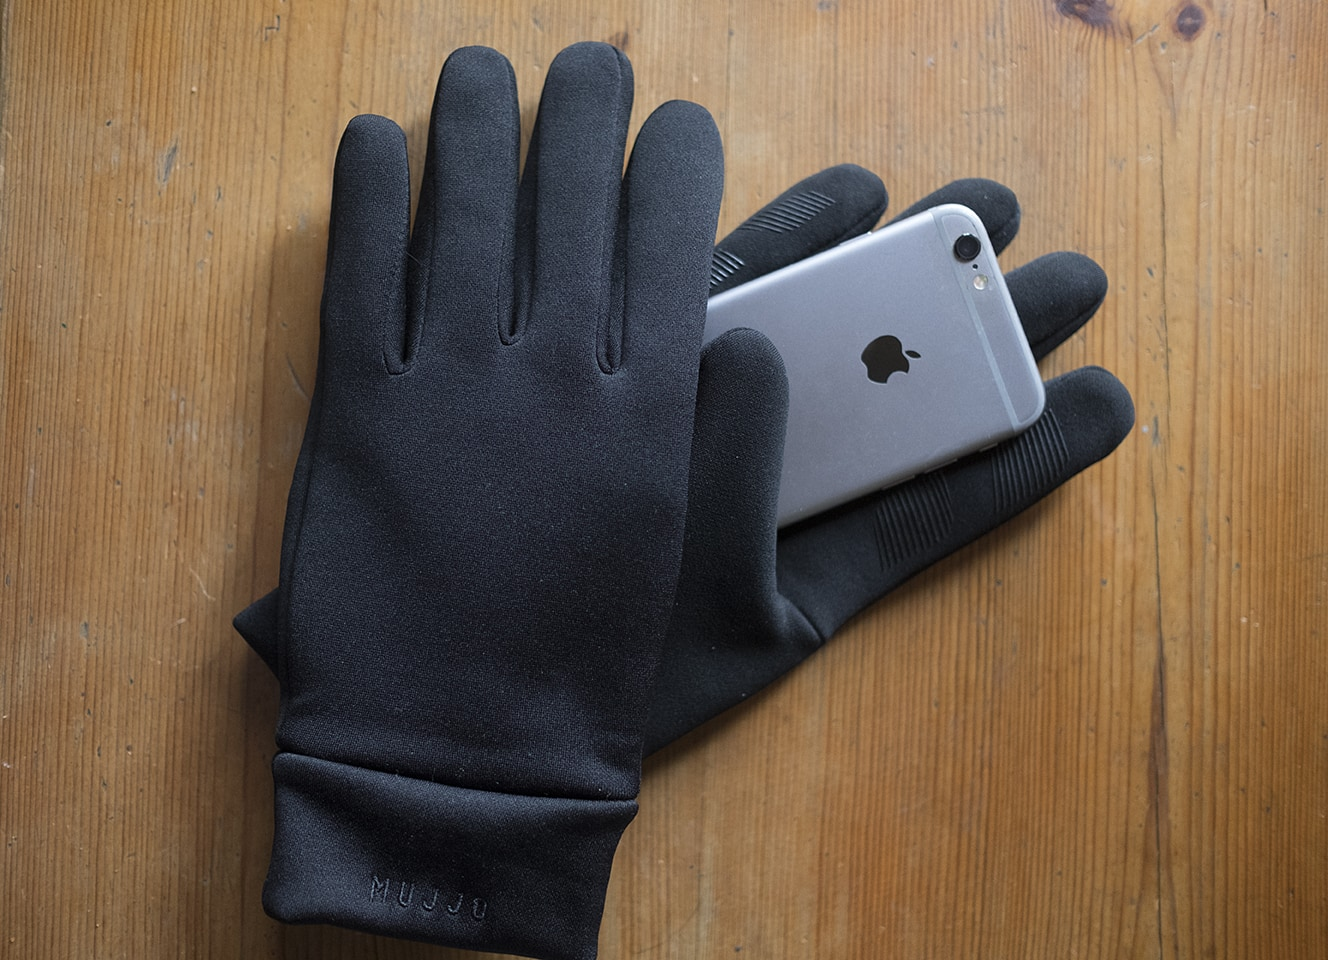 Mujjo touchscreen gloves with iPhone